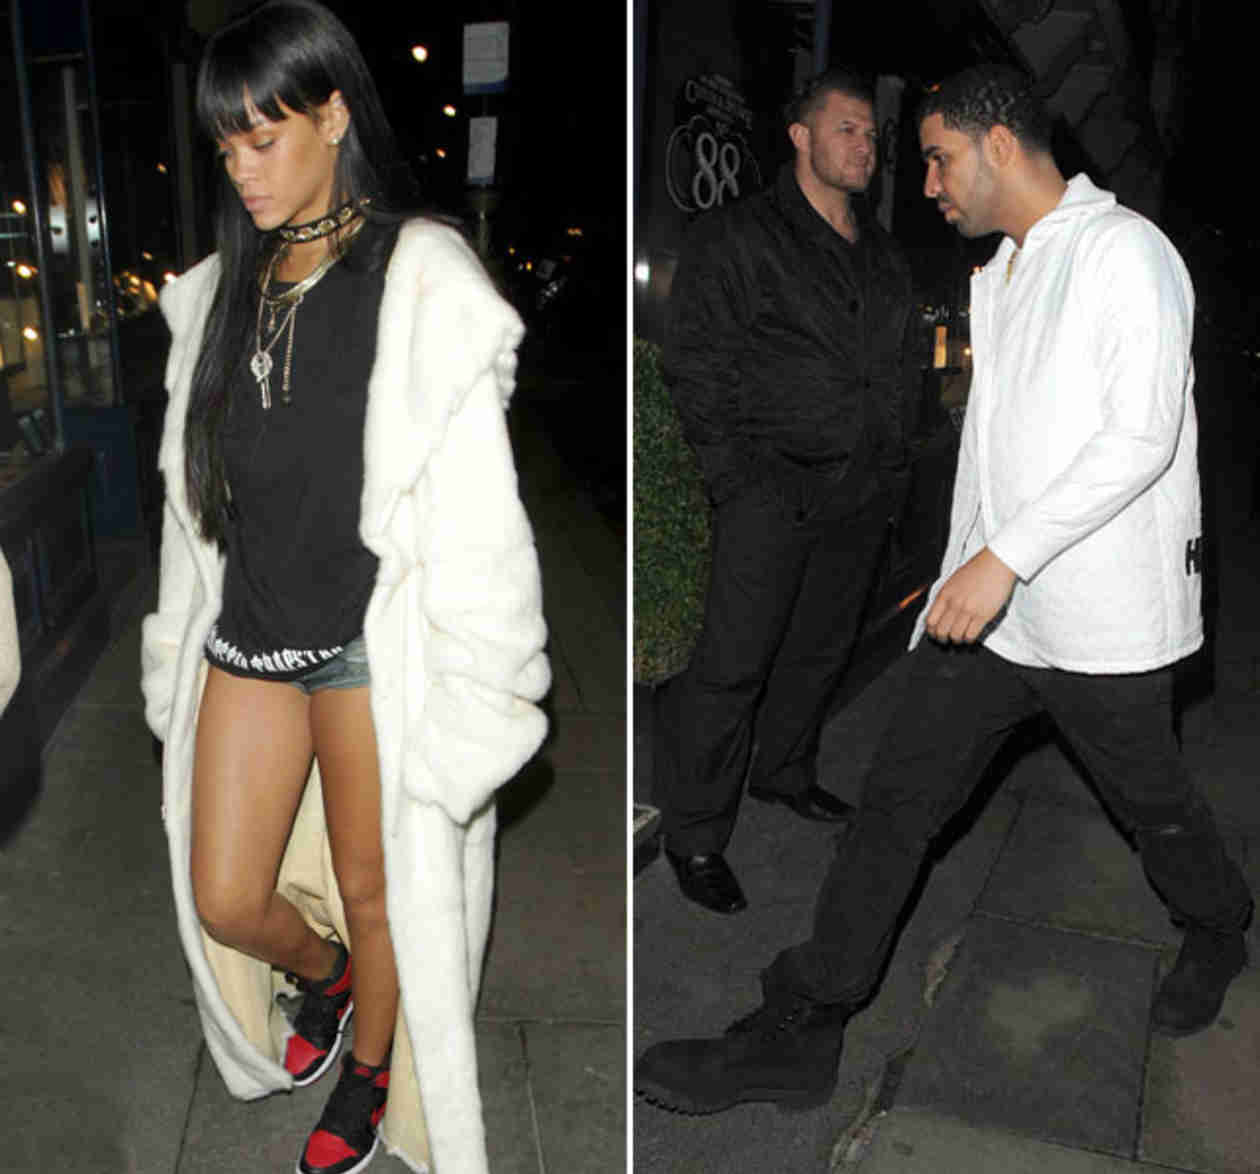 Rihanna and Drake Spotted Out at London Nightclub at 5 AM (PHOTOS)